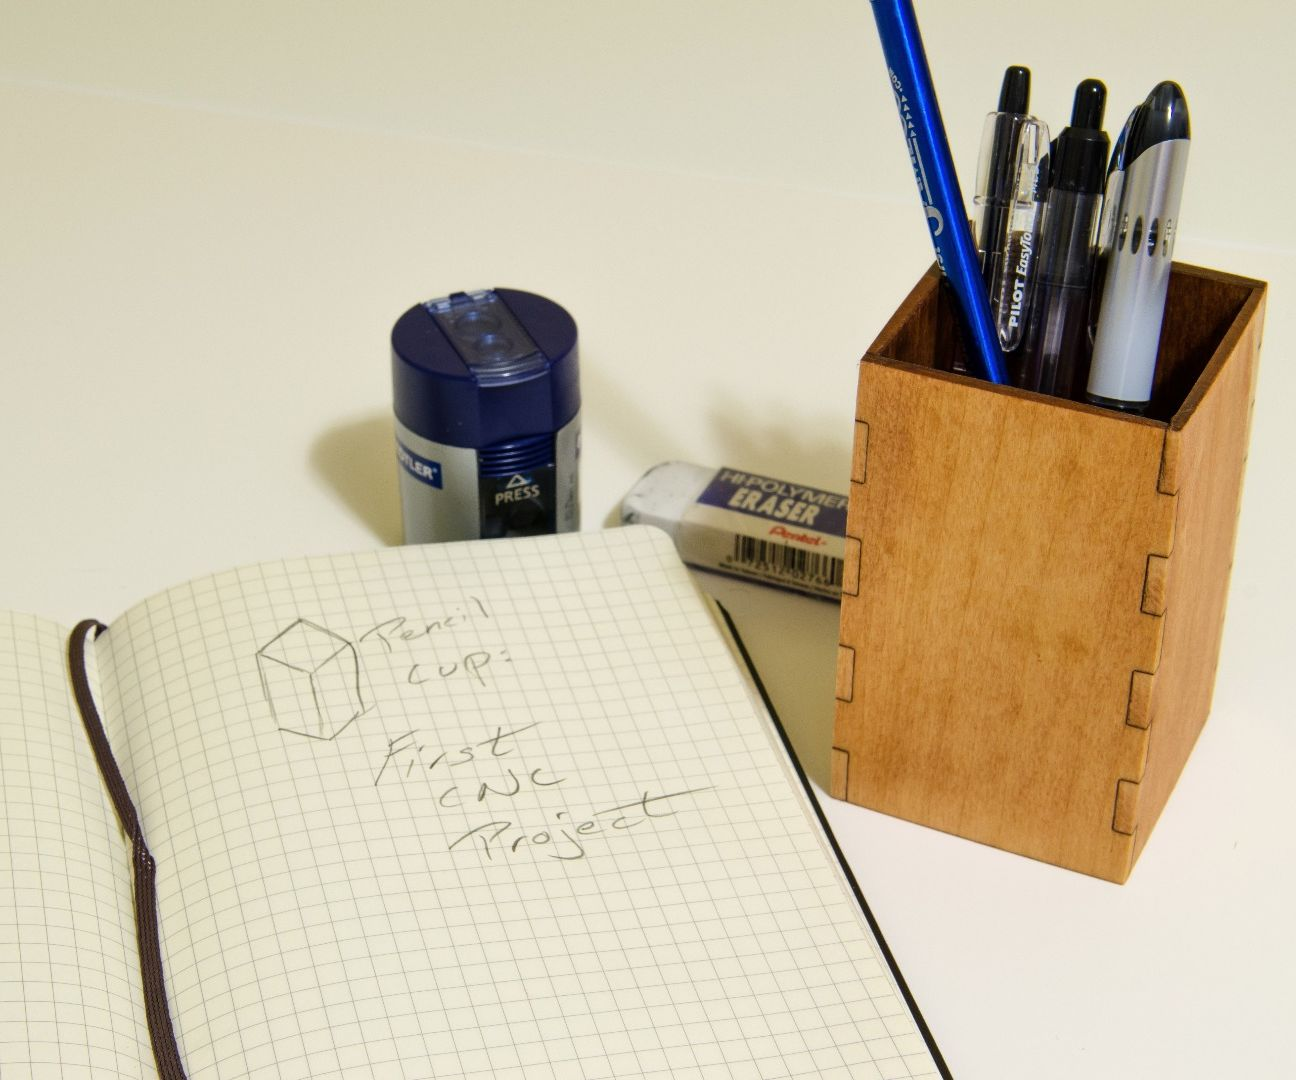 Pencil Cup: First CNC Project